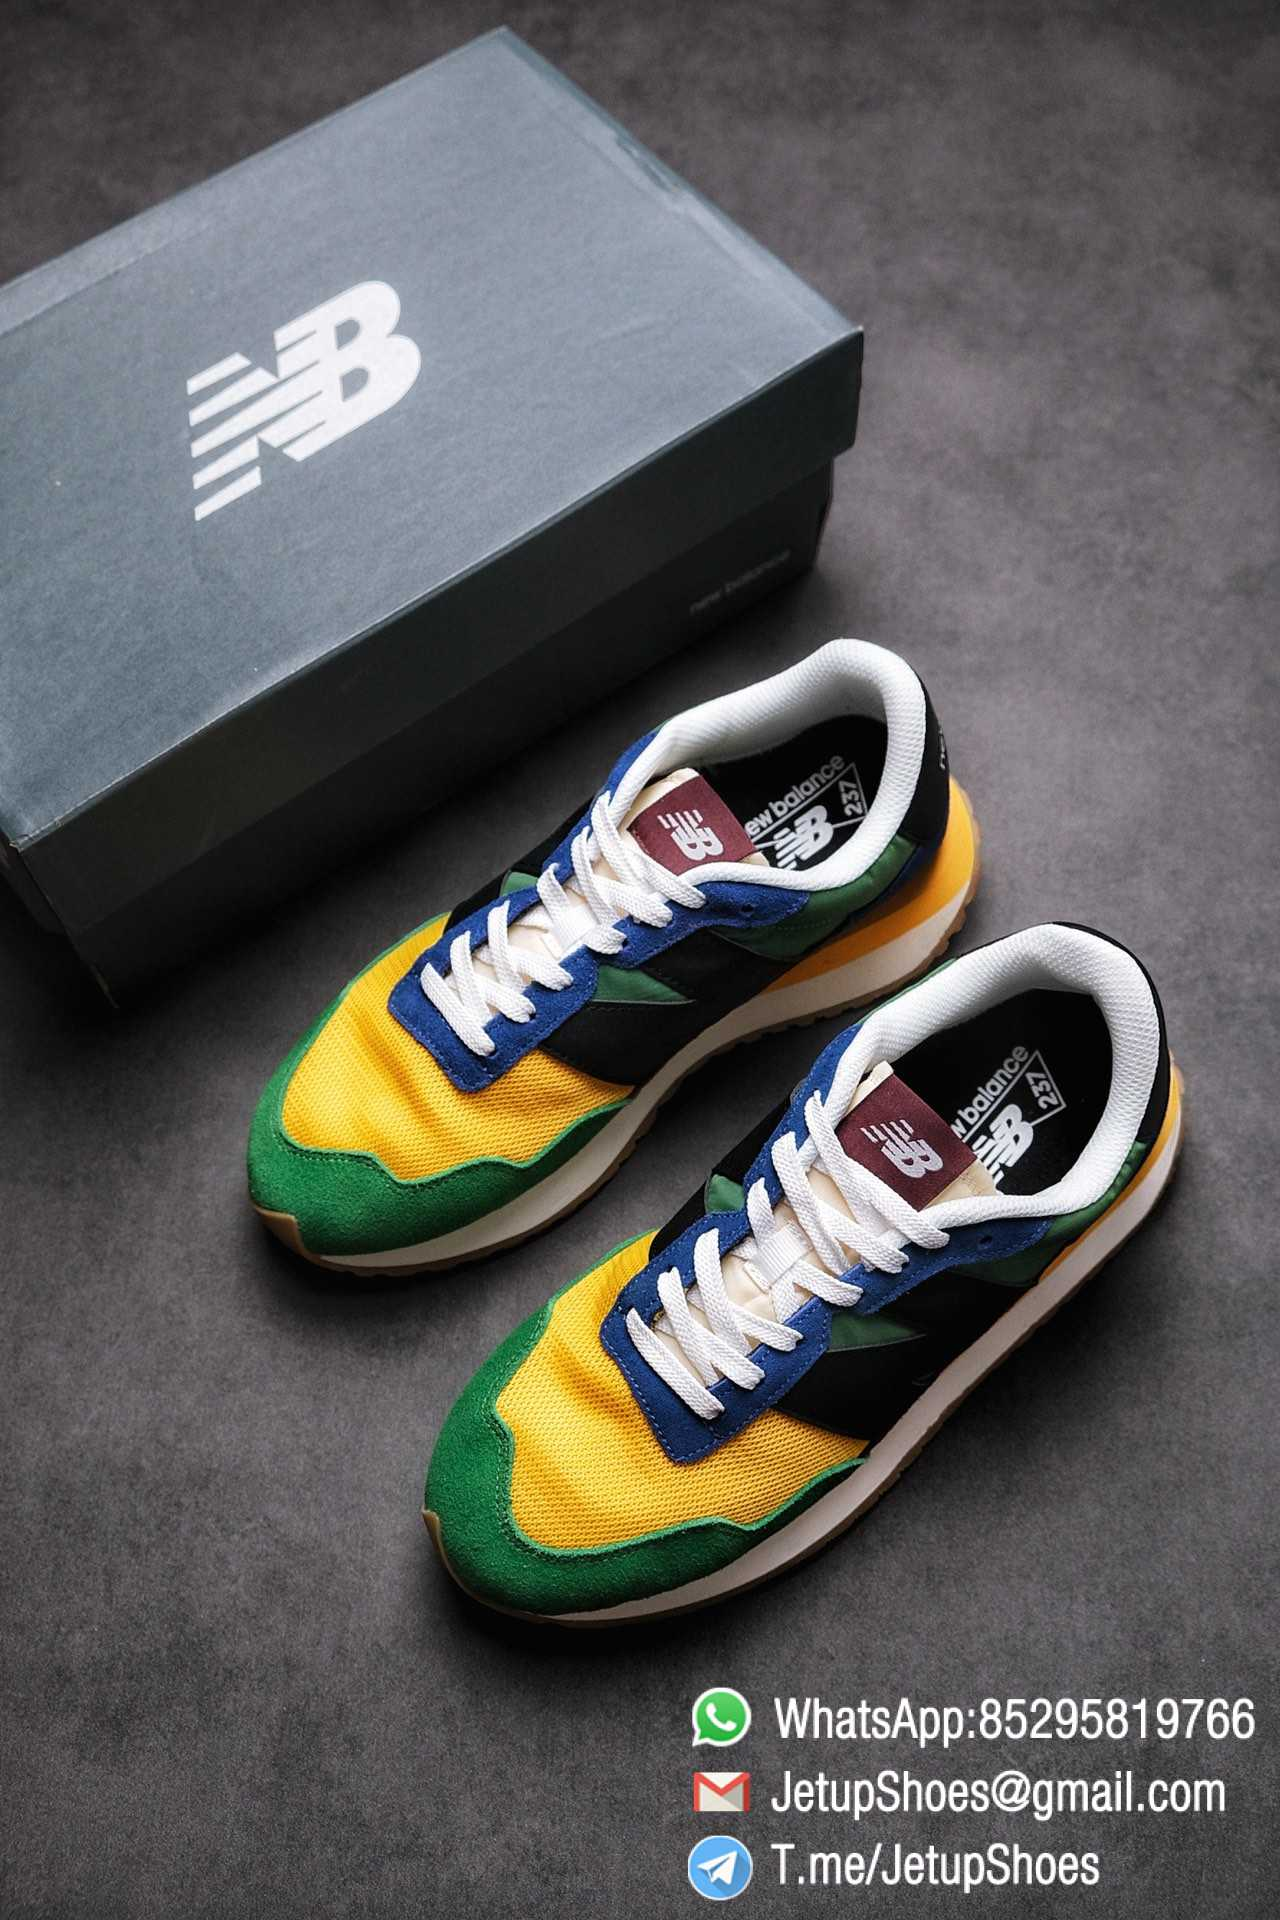 Best Replica New Balance 237 Green Blue Yellow Multi Color SKU MS237LB1 High Quality Fake Running Shoes 04